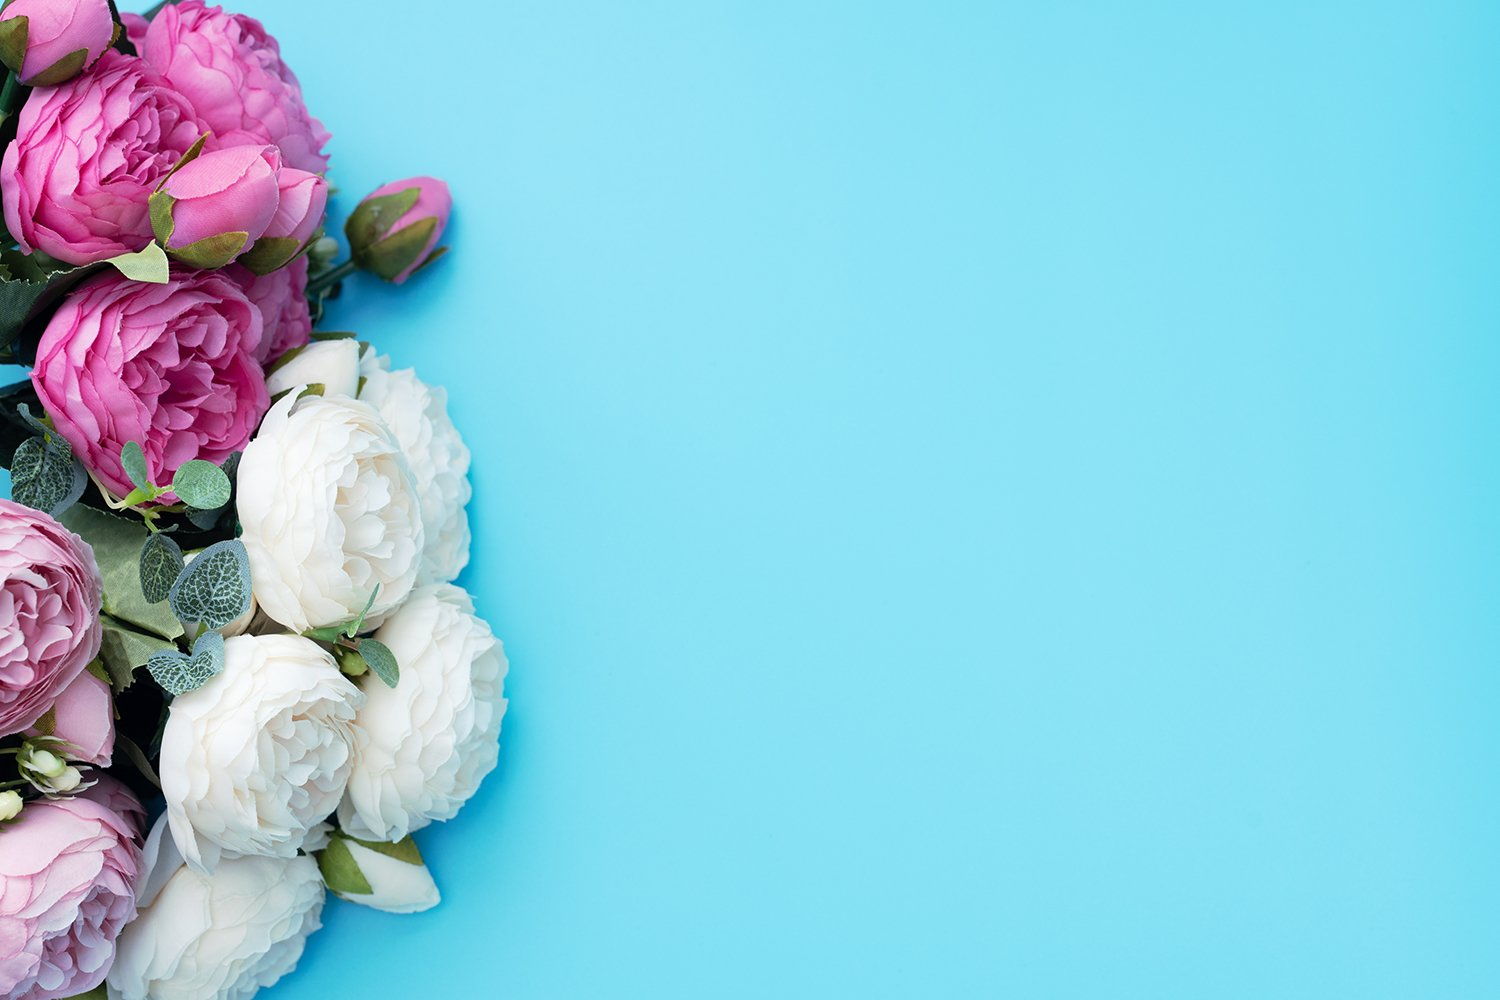 Pink and white flowers on blue background. example image 1